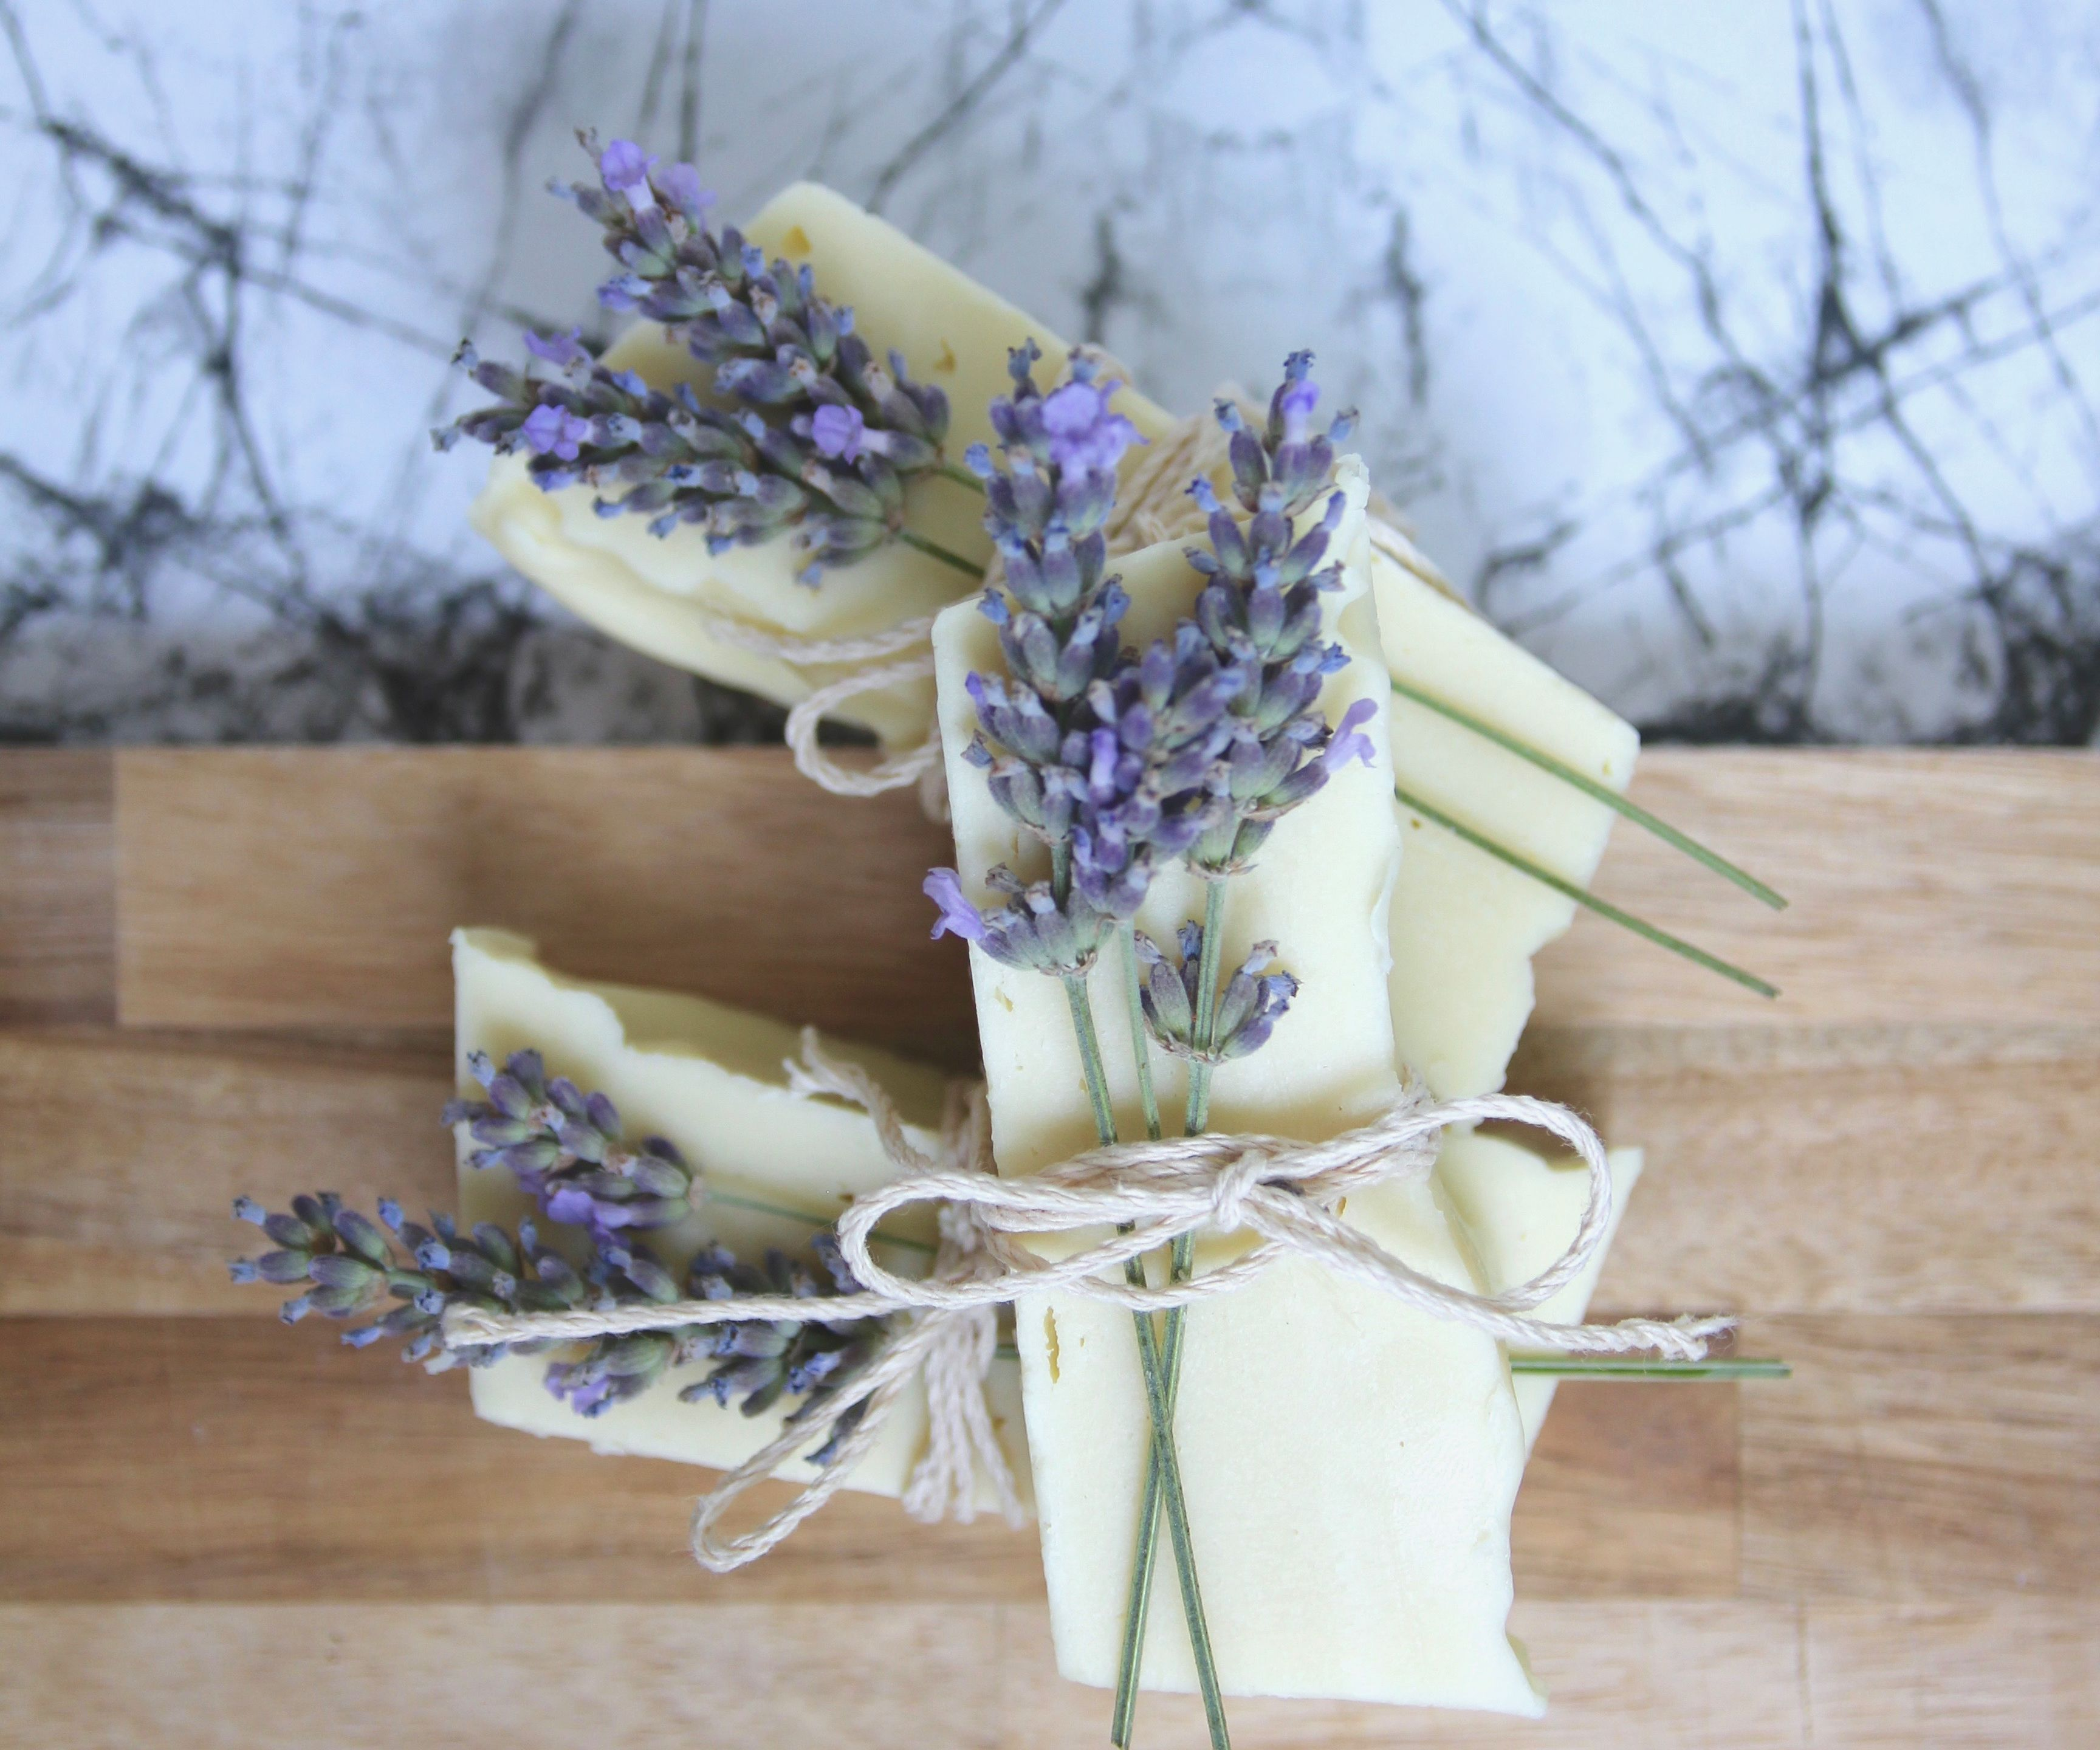 Natural Soap Bars Without Breaking the Bank | Cold Pressed Soap